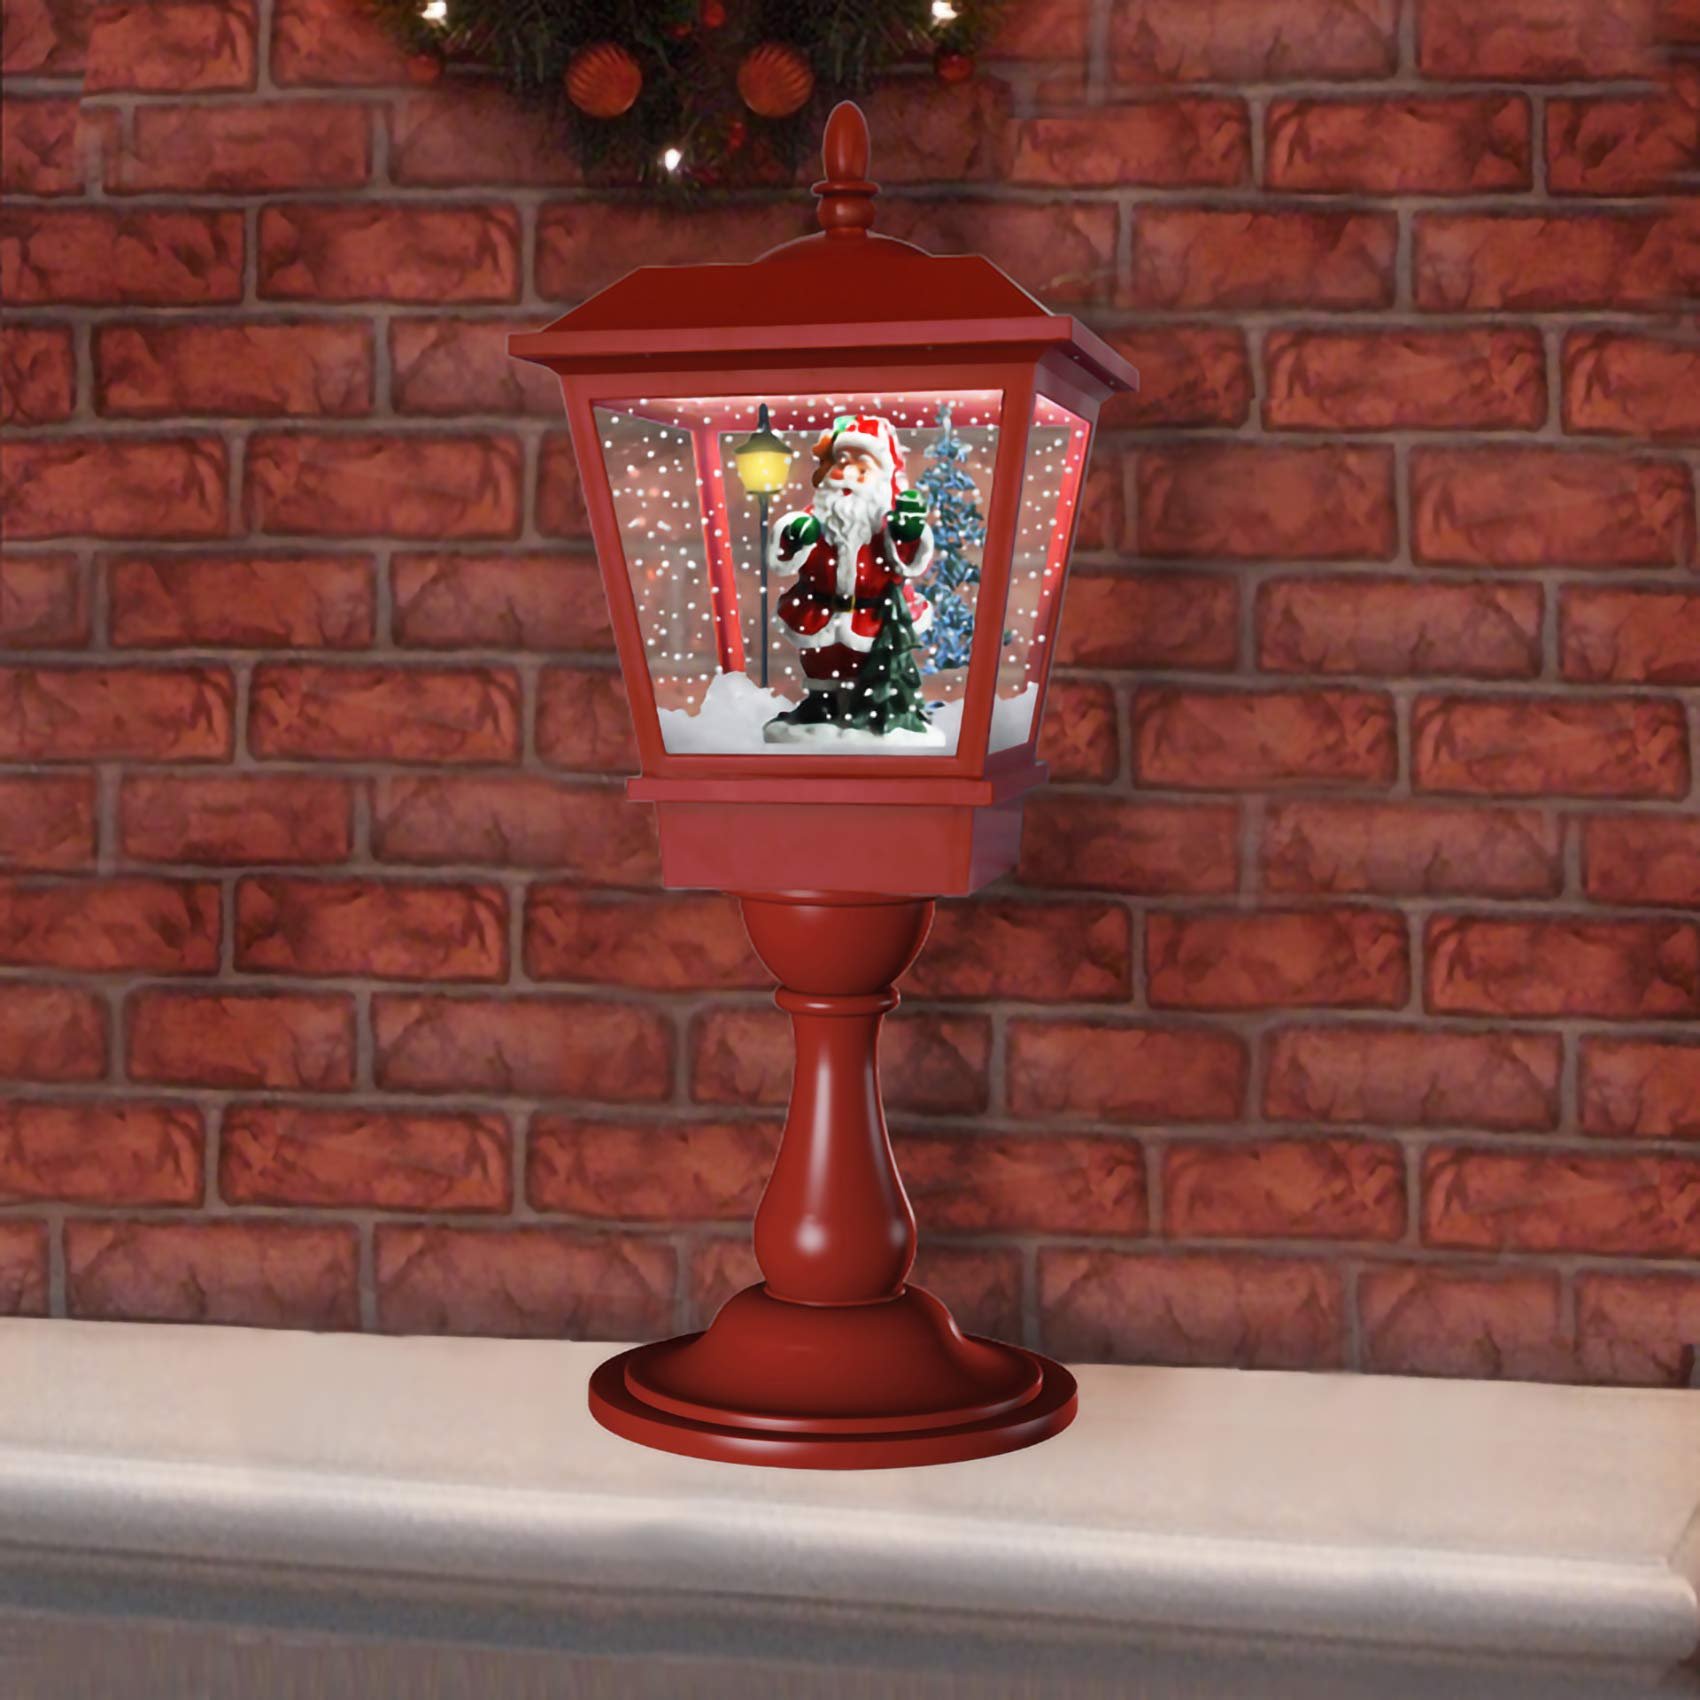 Fraser Hill Farm 25'' Musical Tabletop Lantern in Red Featuring Santa Scene and Snow Function Christmas Decoration